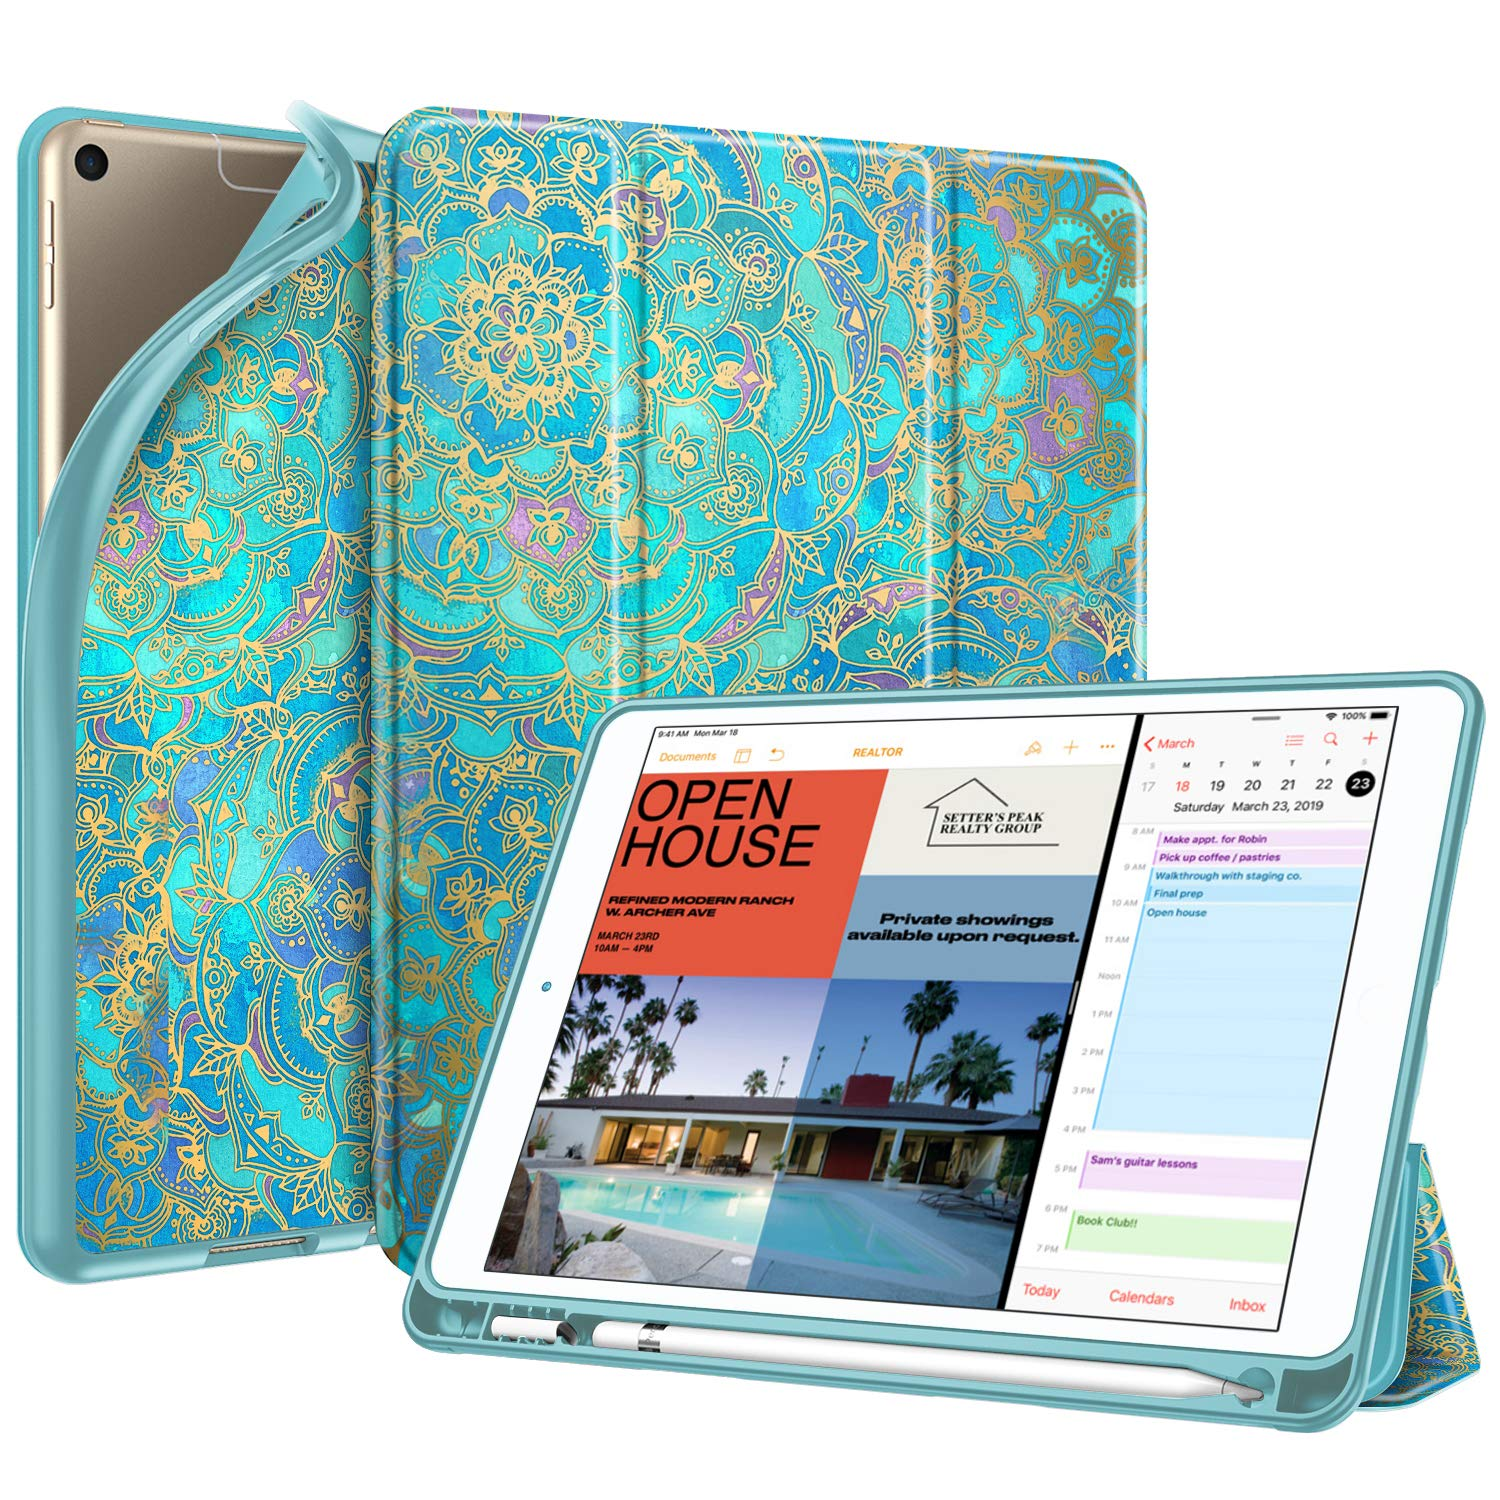 """Fintie SlimShell Case for iPad Air 3rd Gen 10.5"""" 2019 / iPad Pro 10.5 Inch 2017 with Built-in Pencil Holder - Lightweight Smart Stand Soft TPU Back Cover, Auto Wake/Sleep (Shades of Blue)"""